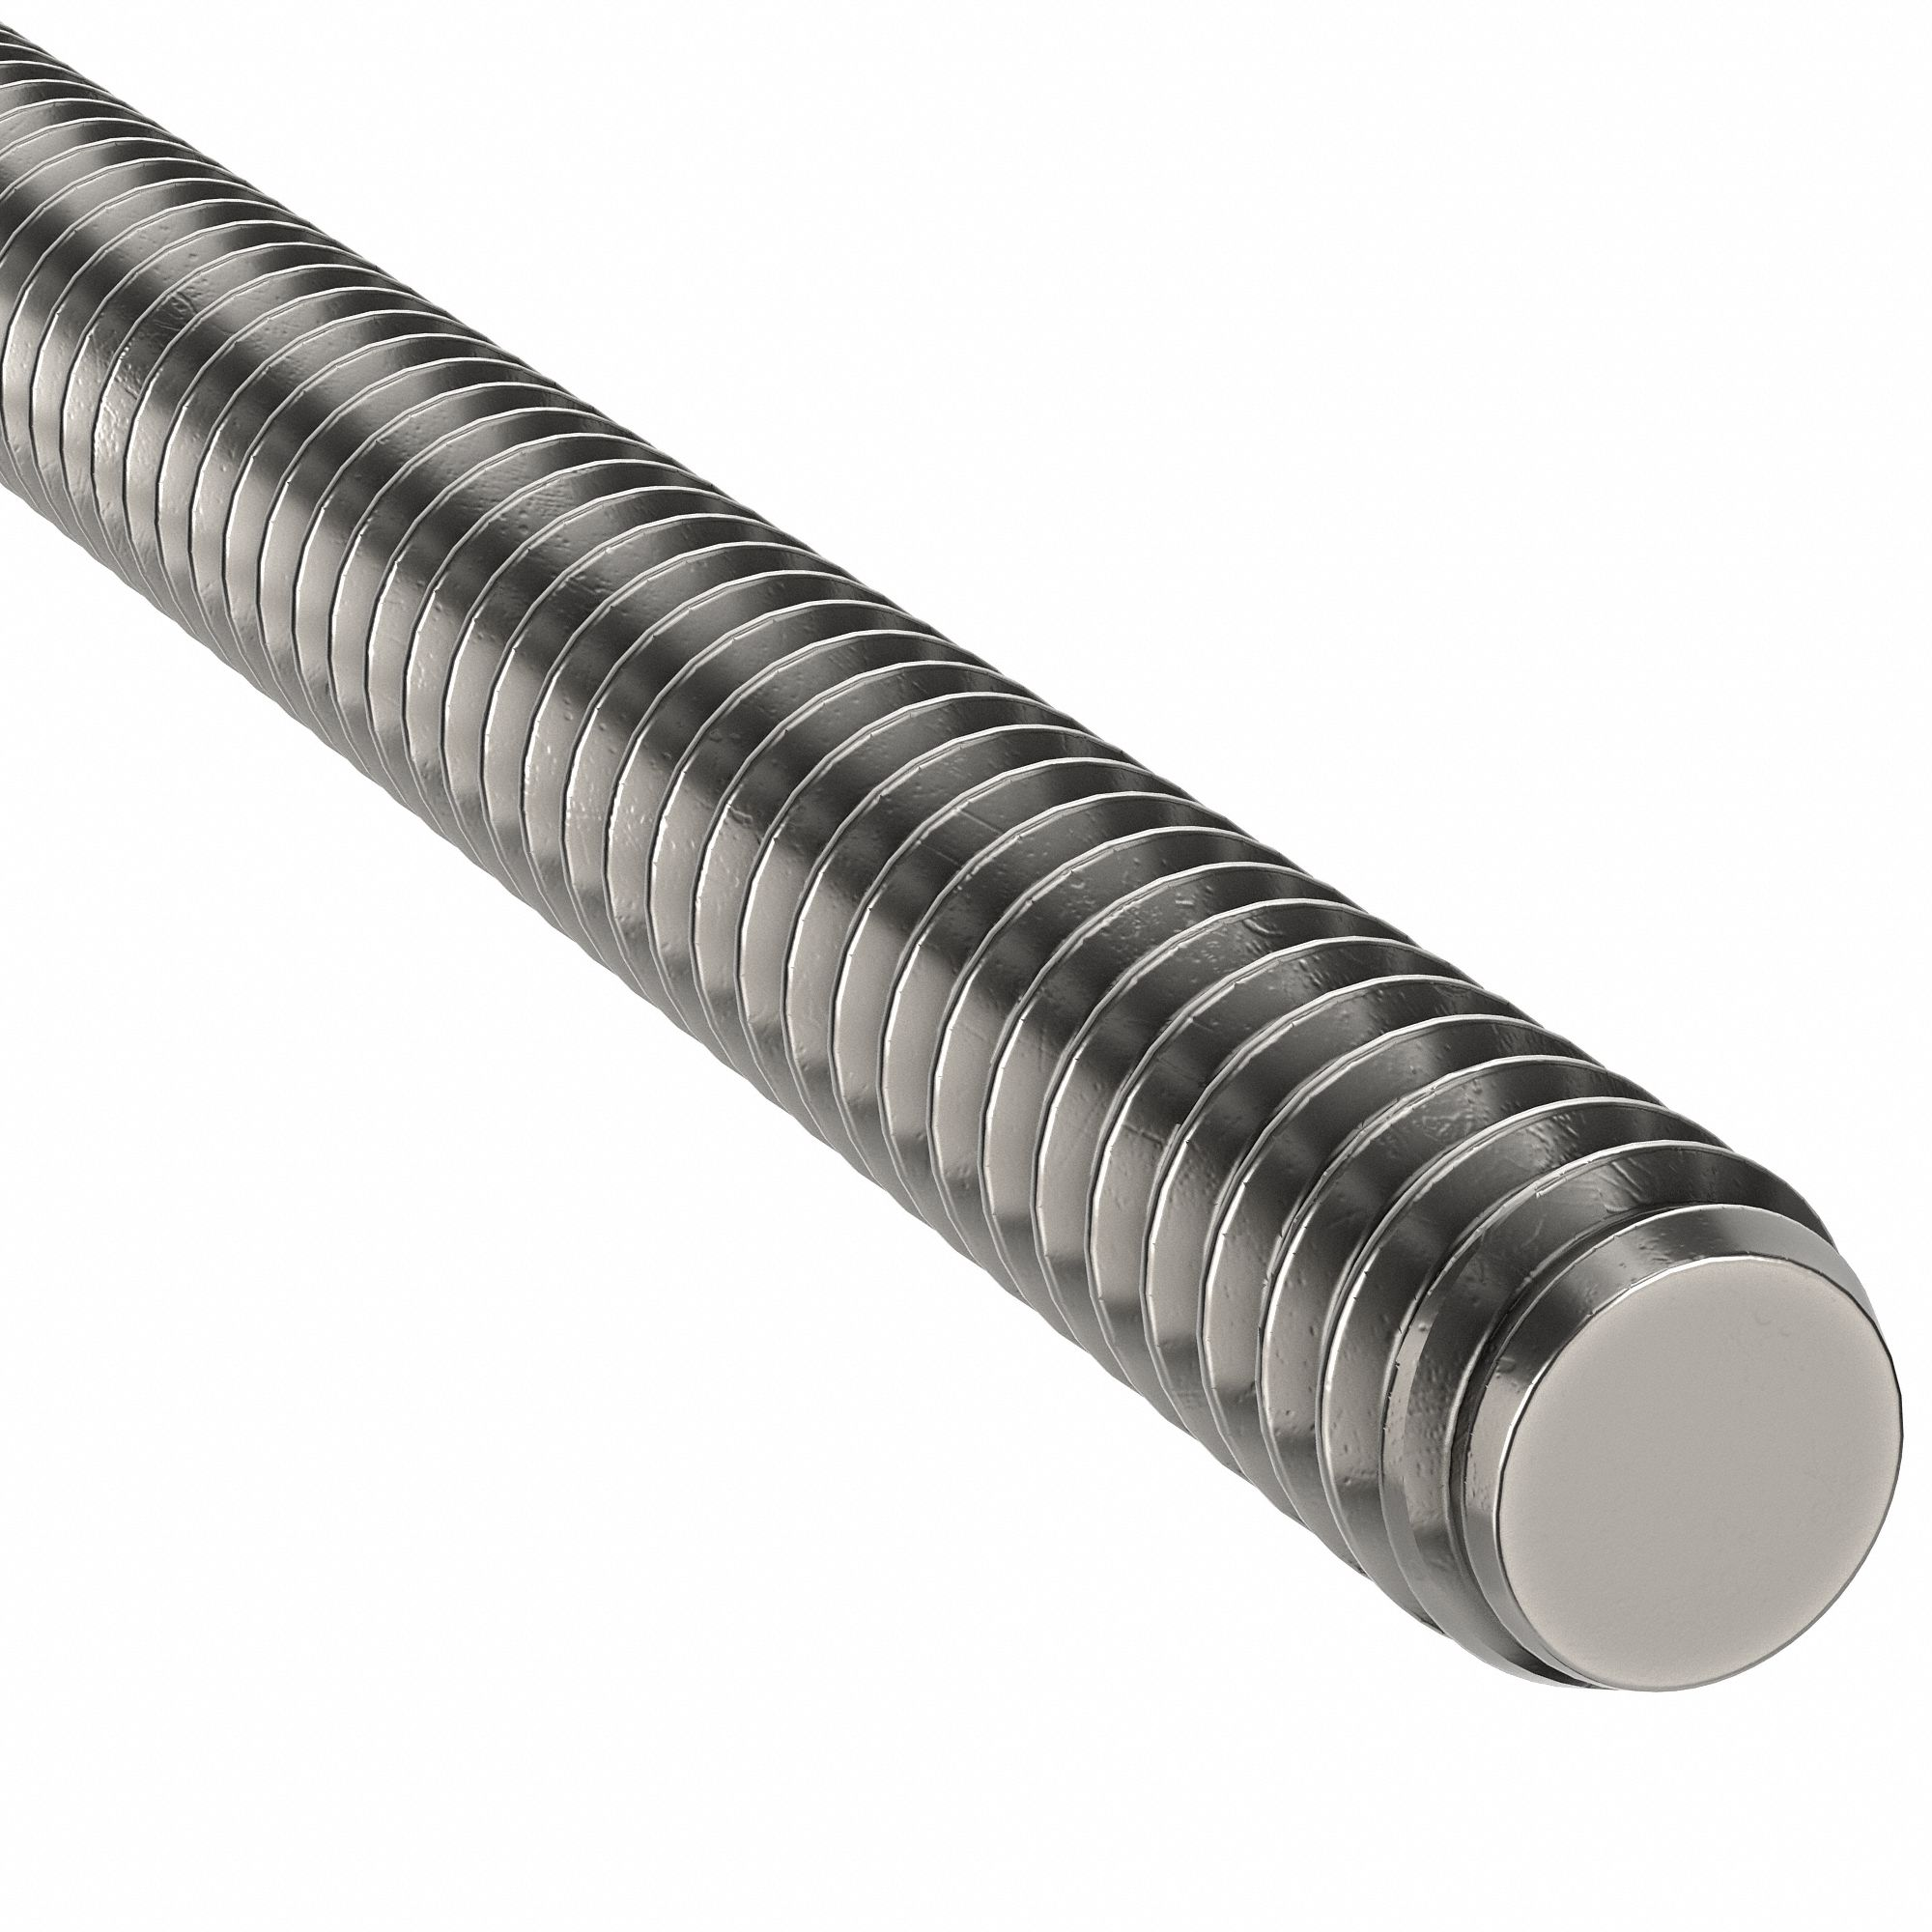 Fully Threaded Rods And Studs Grainger Industrial Supply